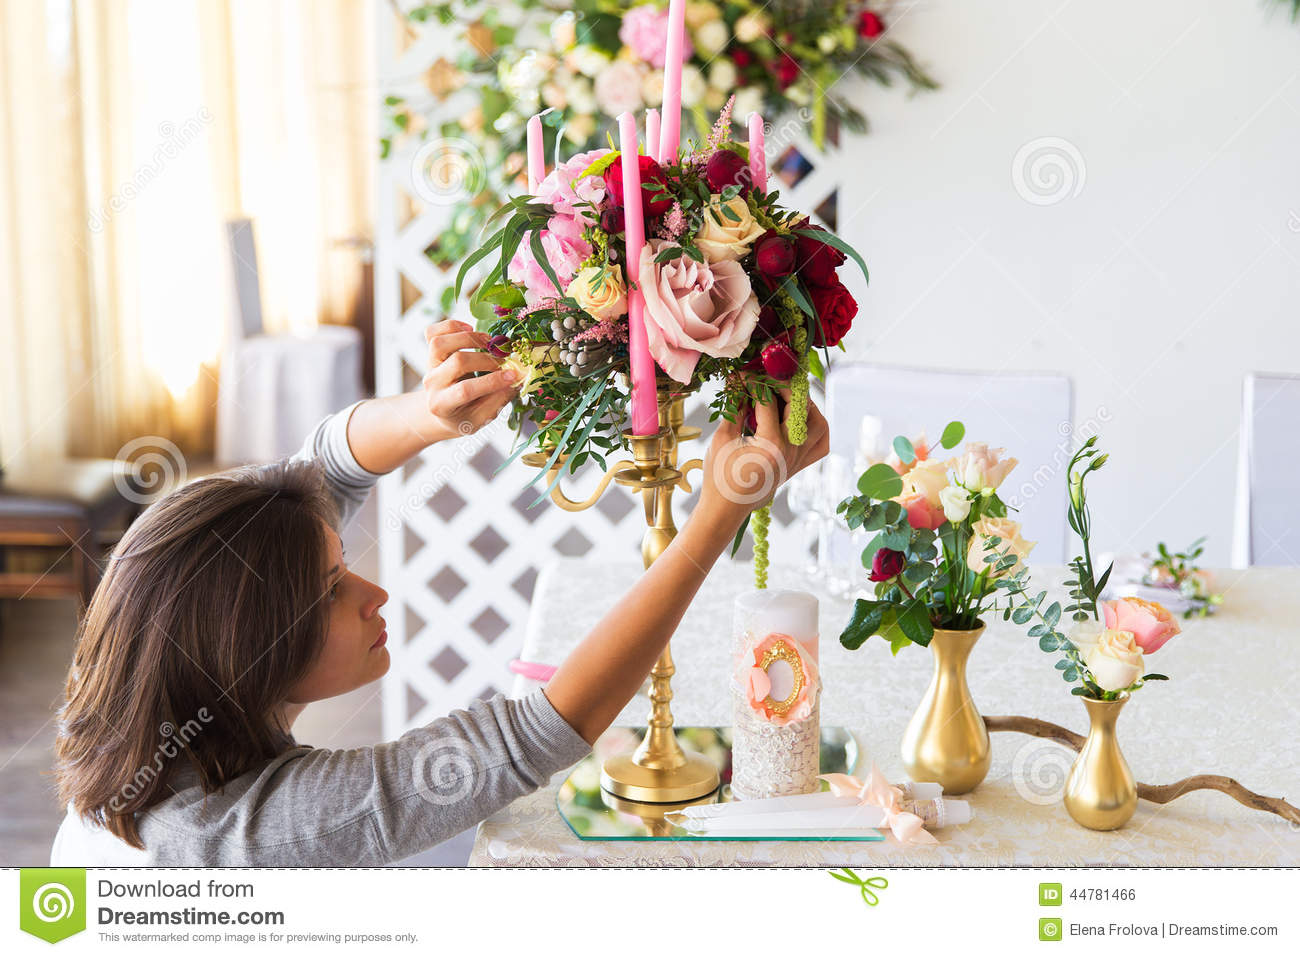 Florist at work. Woman making spring floral decorations the wedding table , the bride and groom. Flowers, candles, a bottle of ch